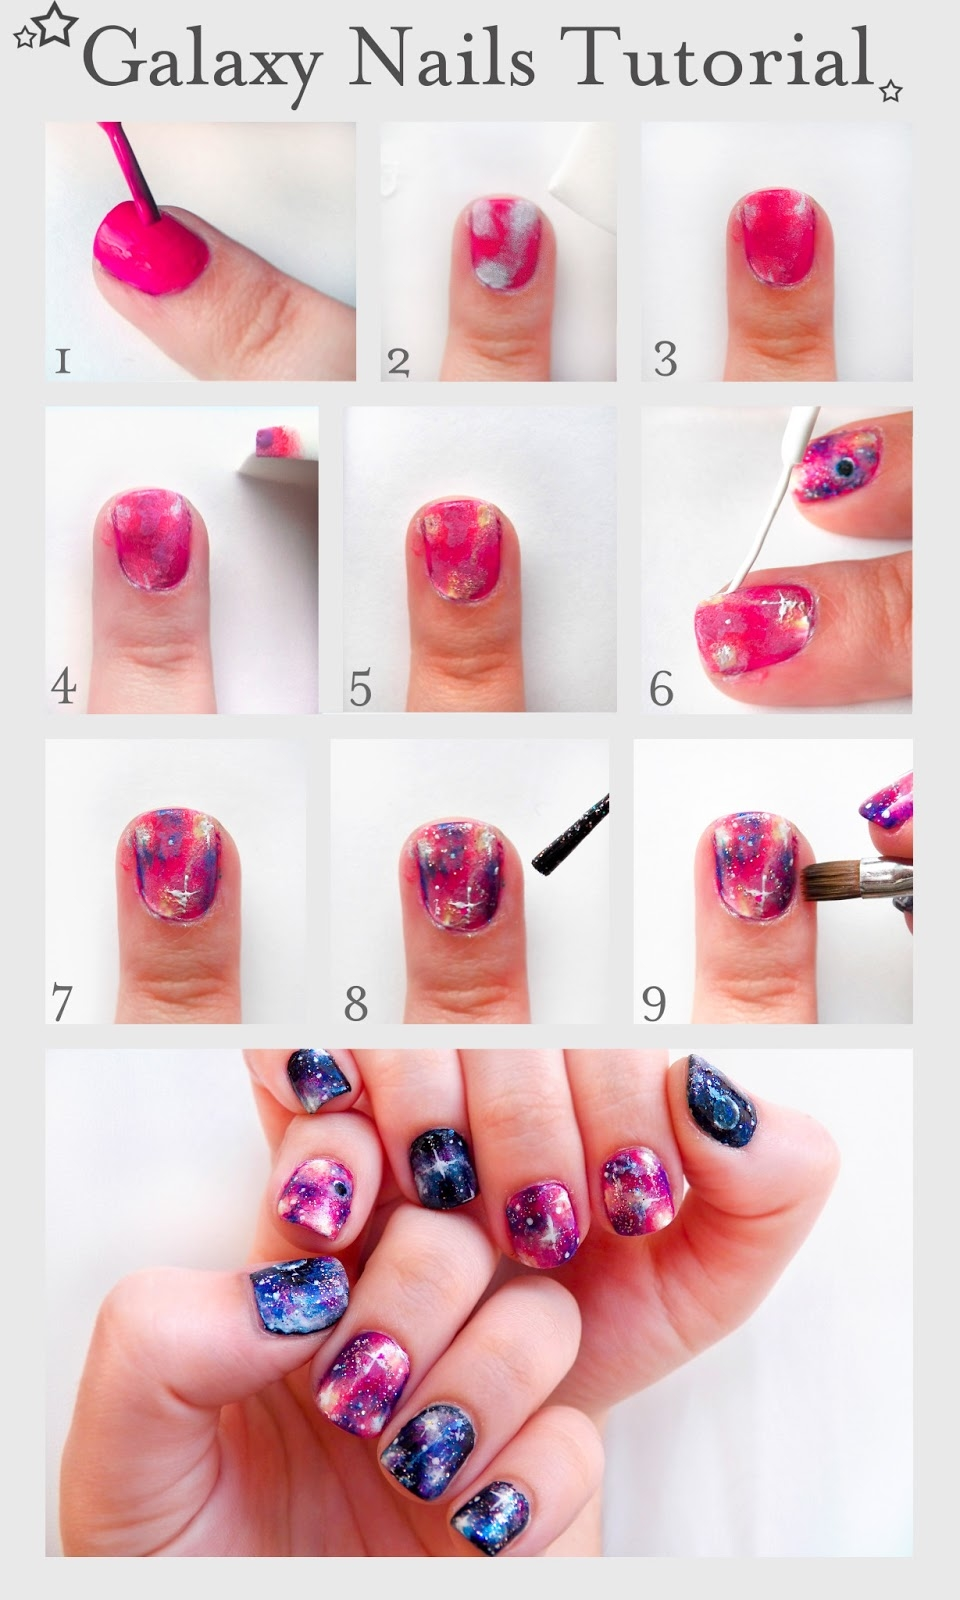 Galaxy Nails Tutorial Pictures, Photos, and Images for Facebook ...